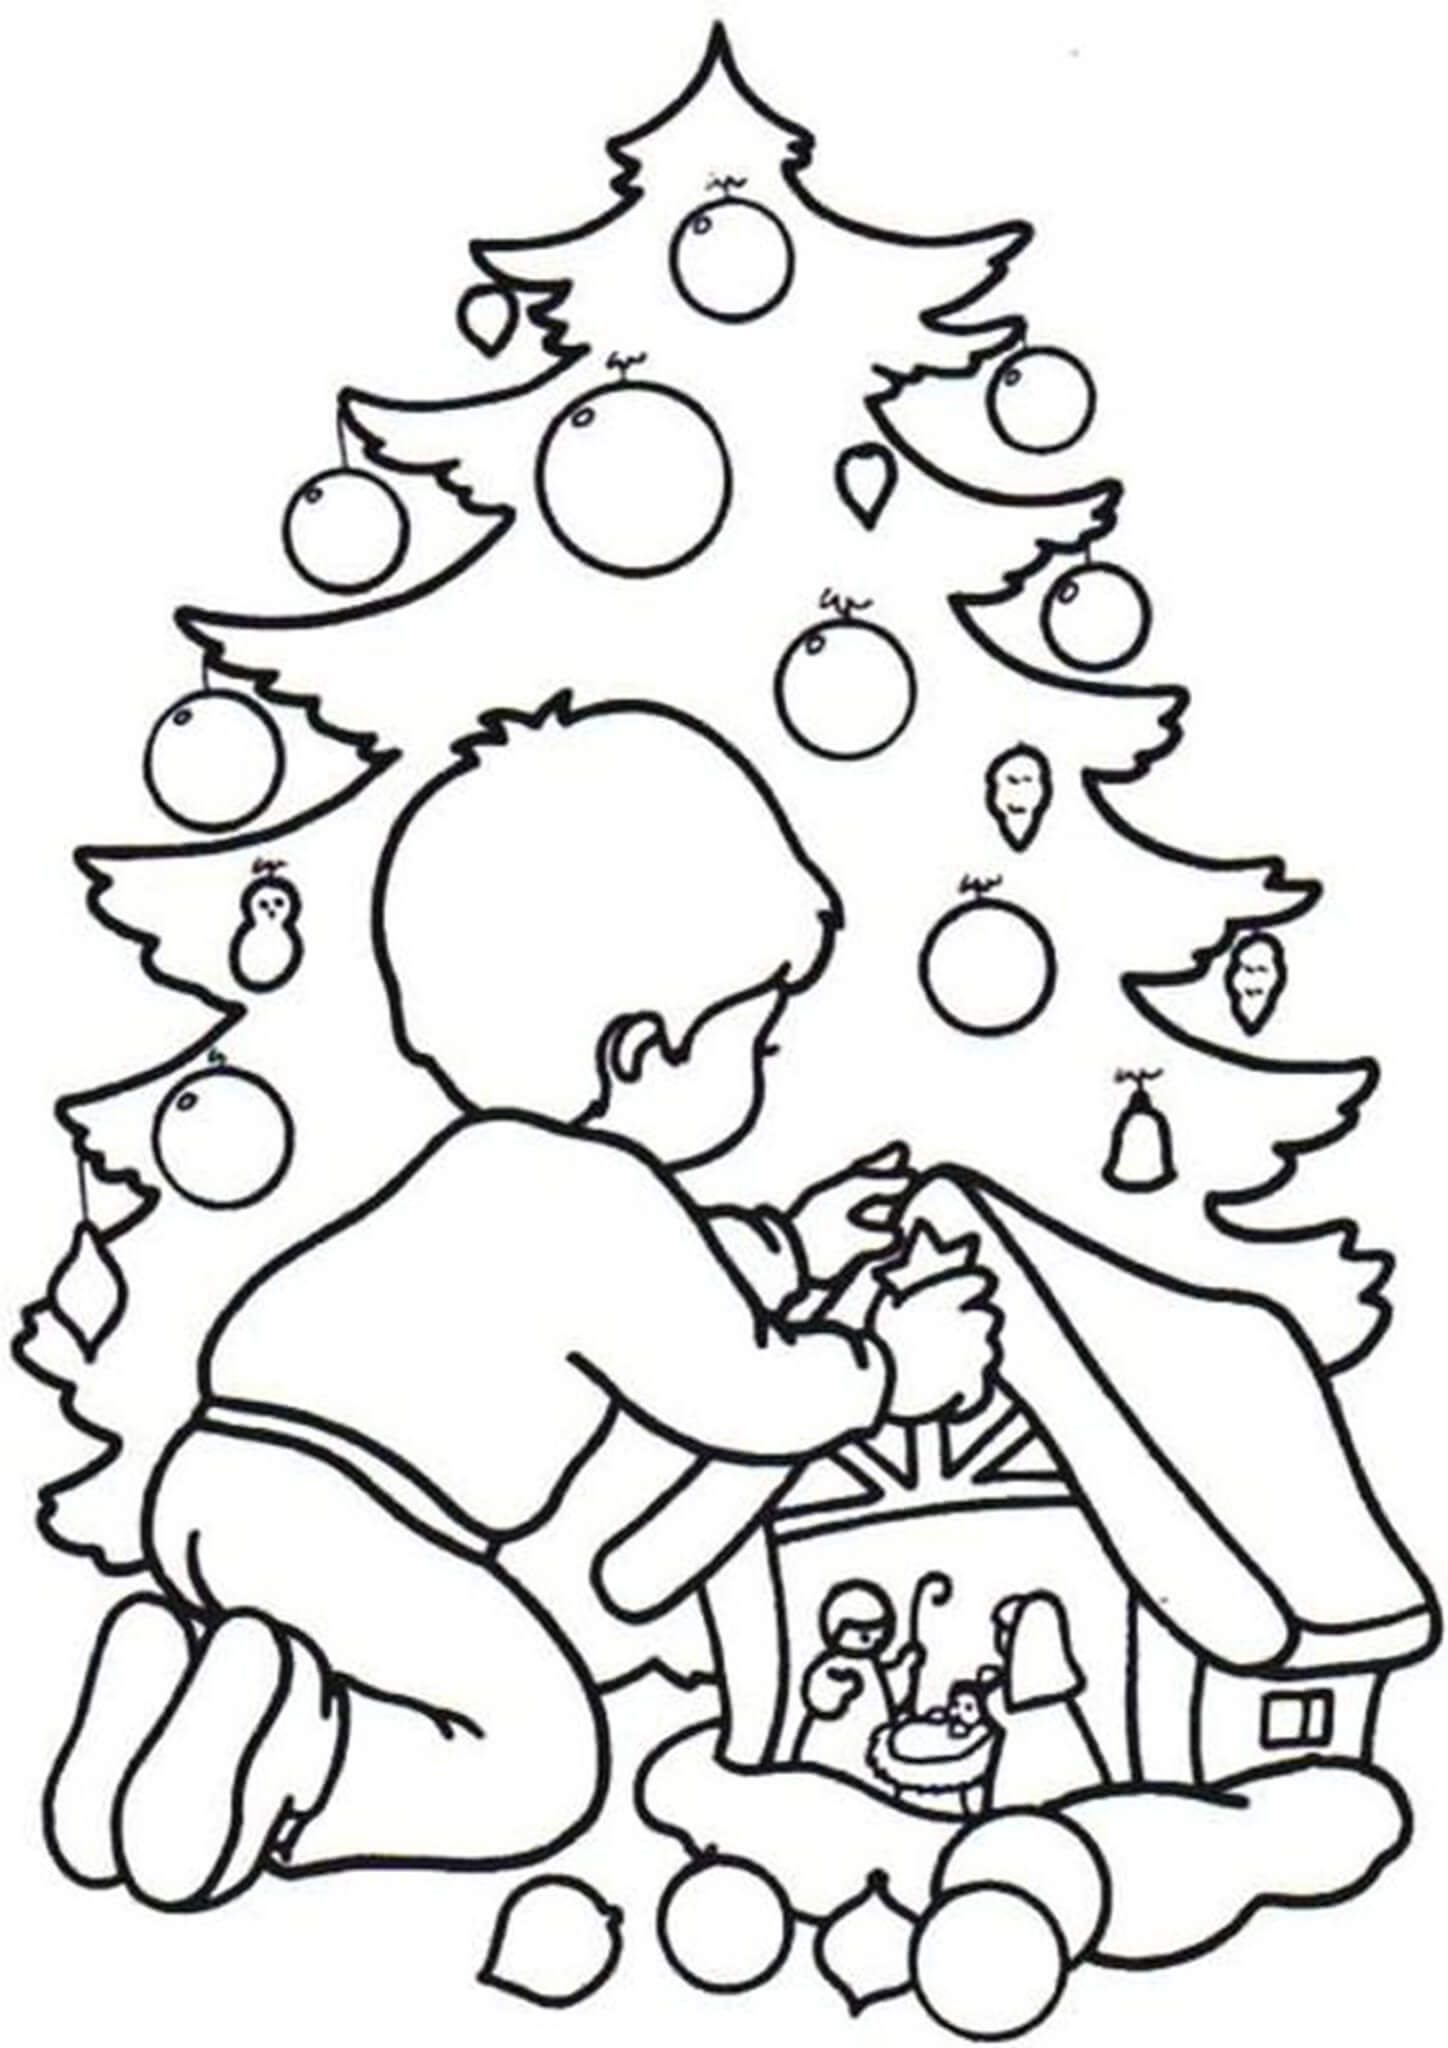 Free Easy To Print Christmas Tree Coloring Pages Christmas Tree Coloring Page Tree Coloring Page Christmas Coloring Books